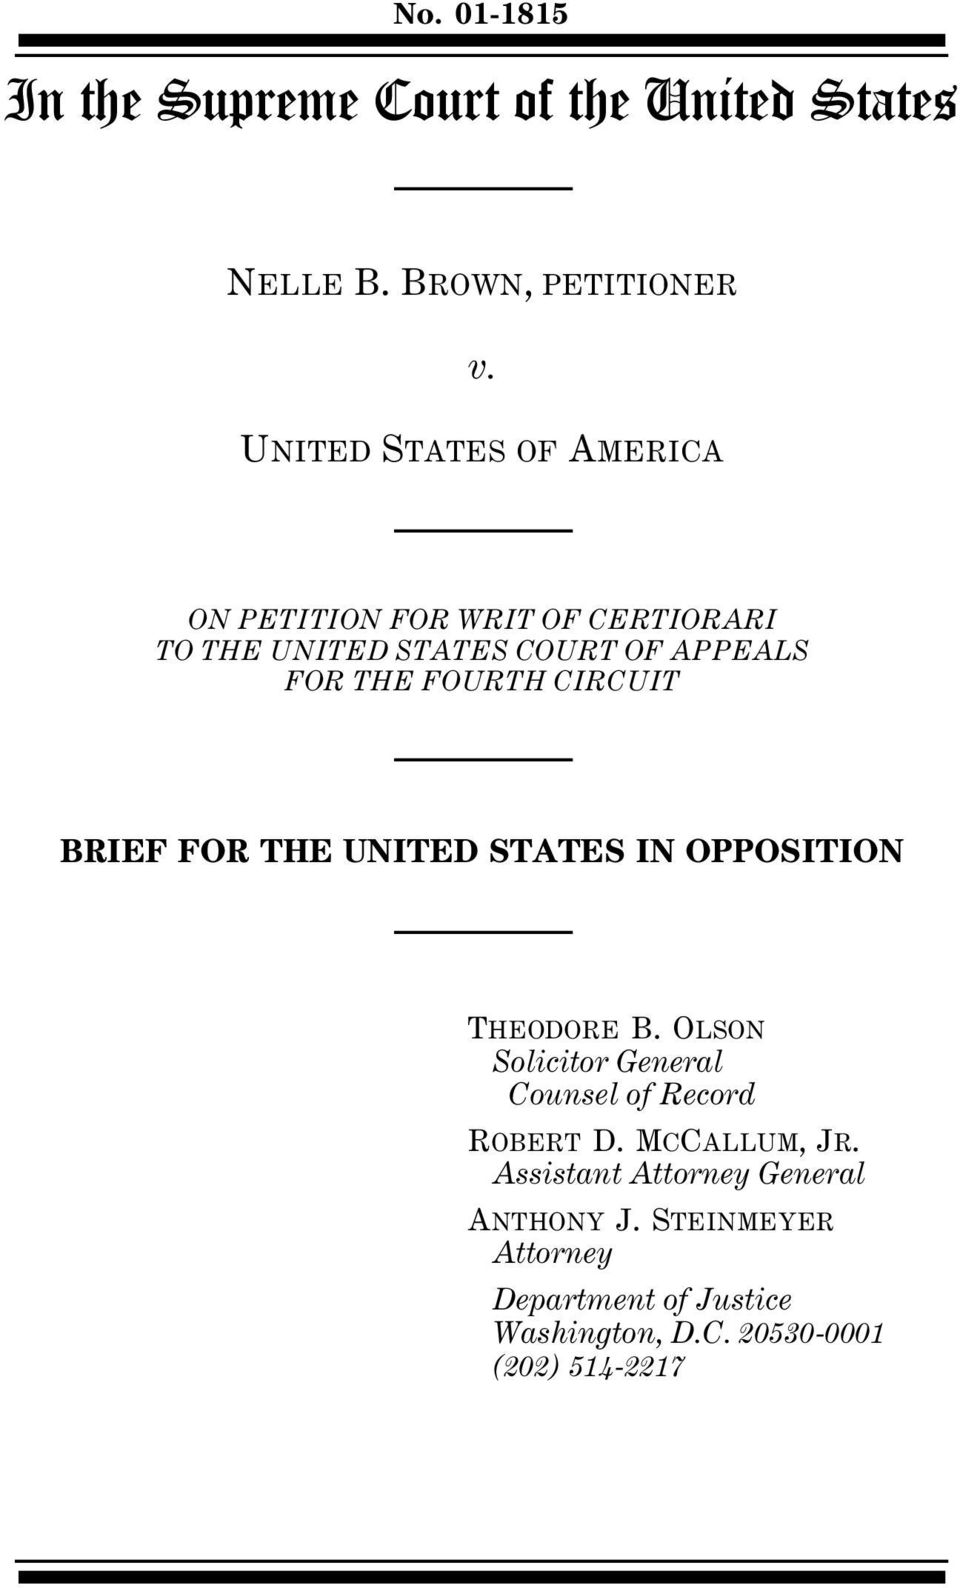 FOURTH CIRCUIT BRIEF FOR THE UNITED STATES IN OPPOSITION THEODORE B.